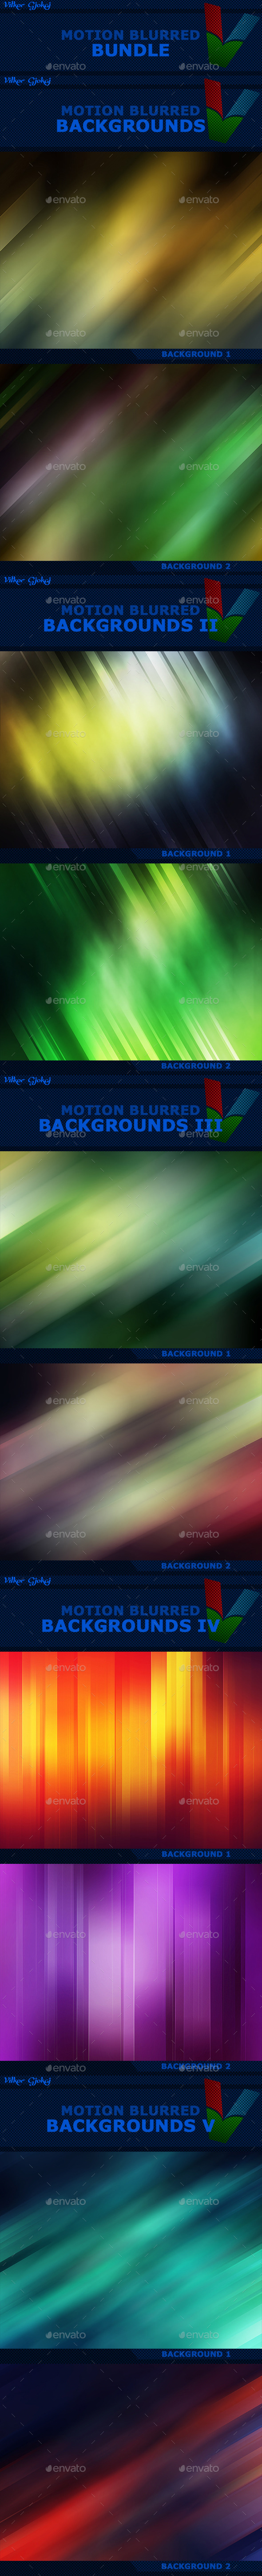 25 Motion Blurred Backgrounds BUNDLE - Abstract Backgrounds